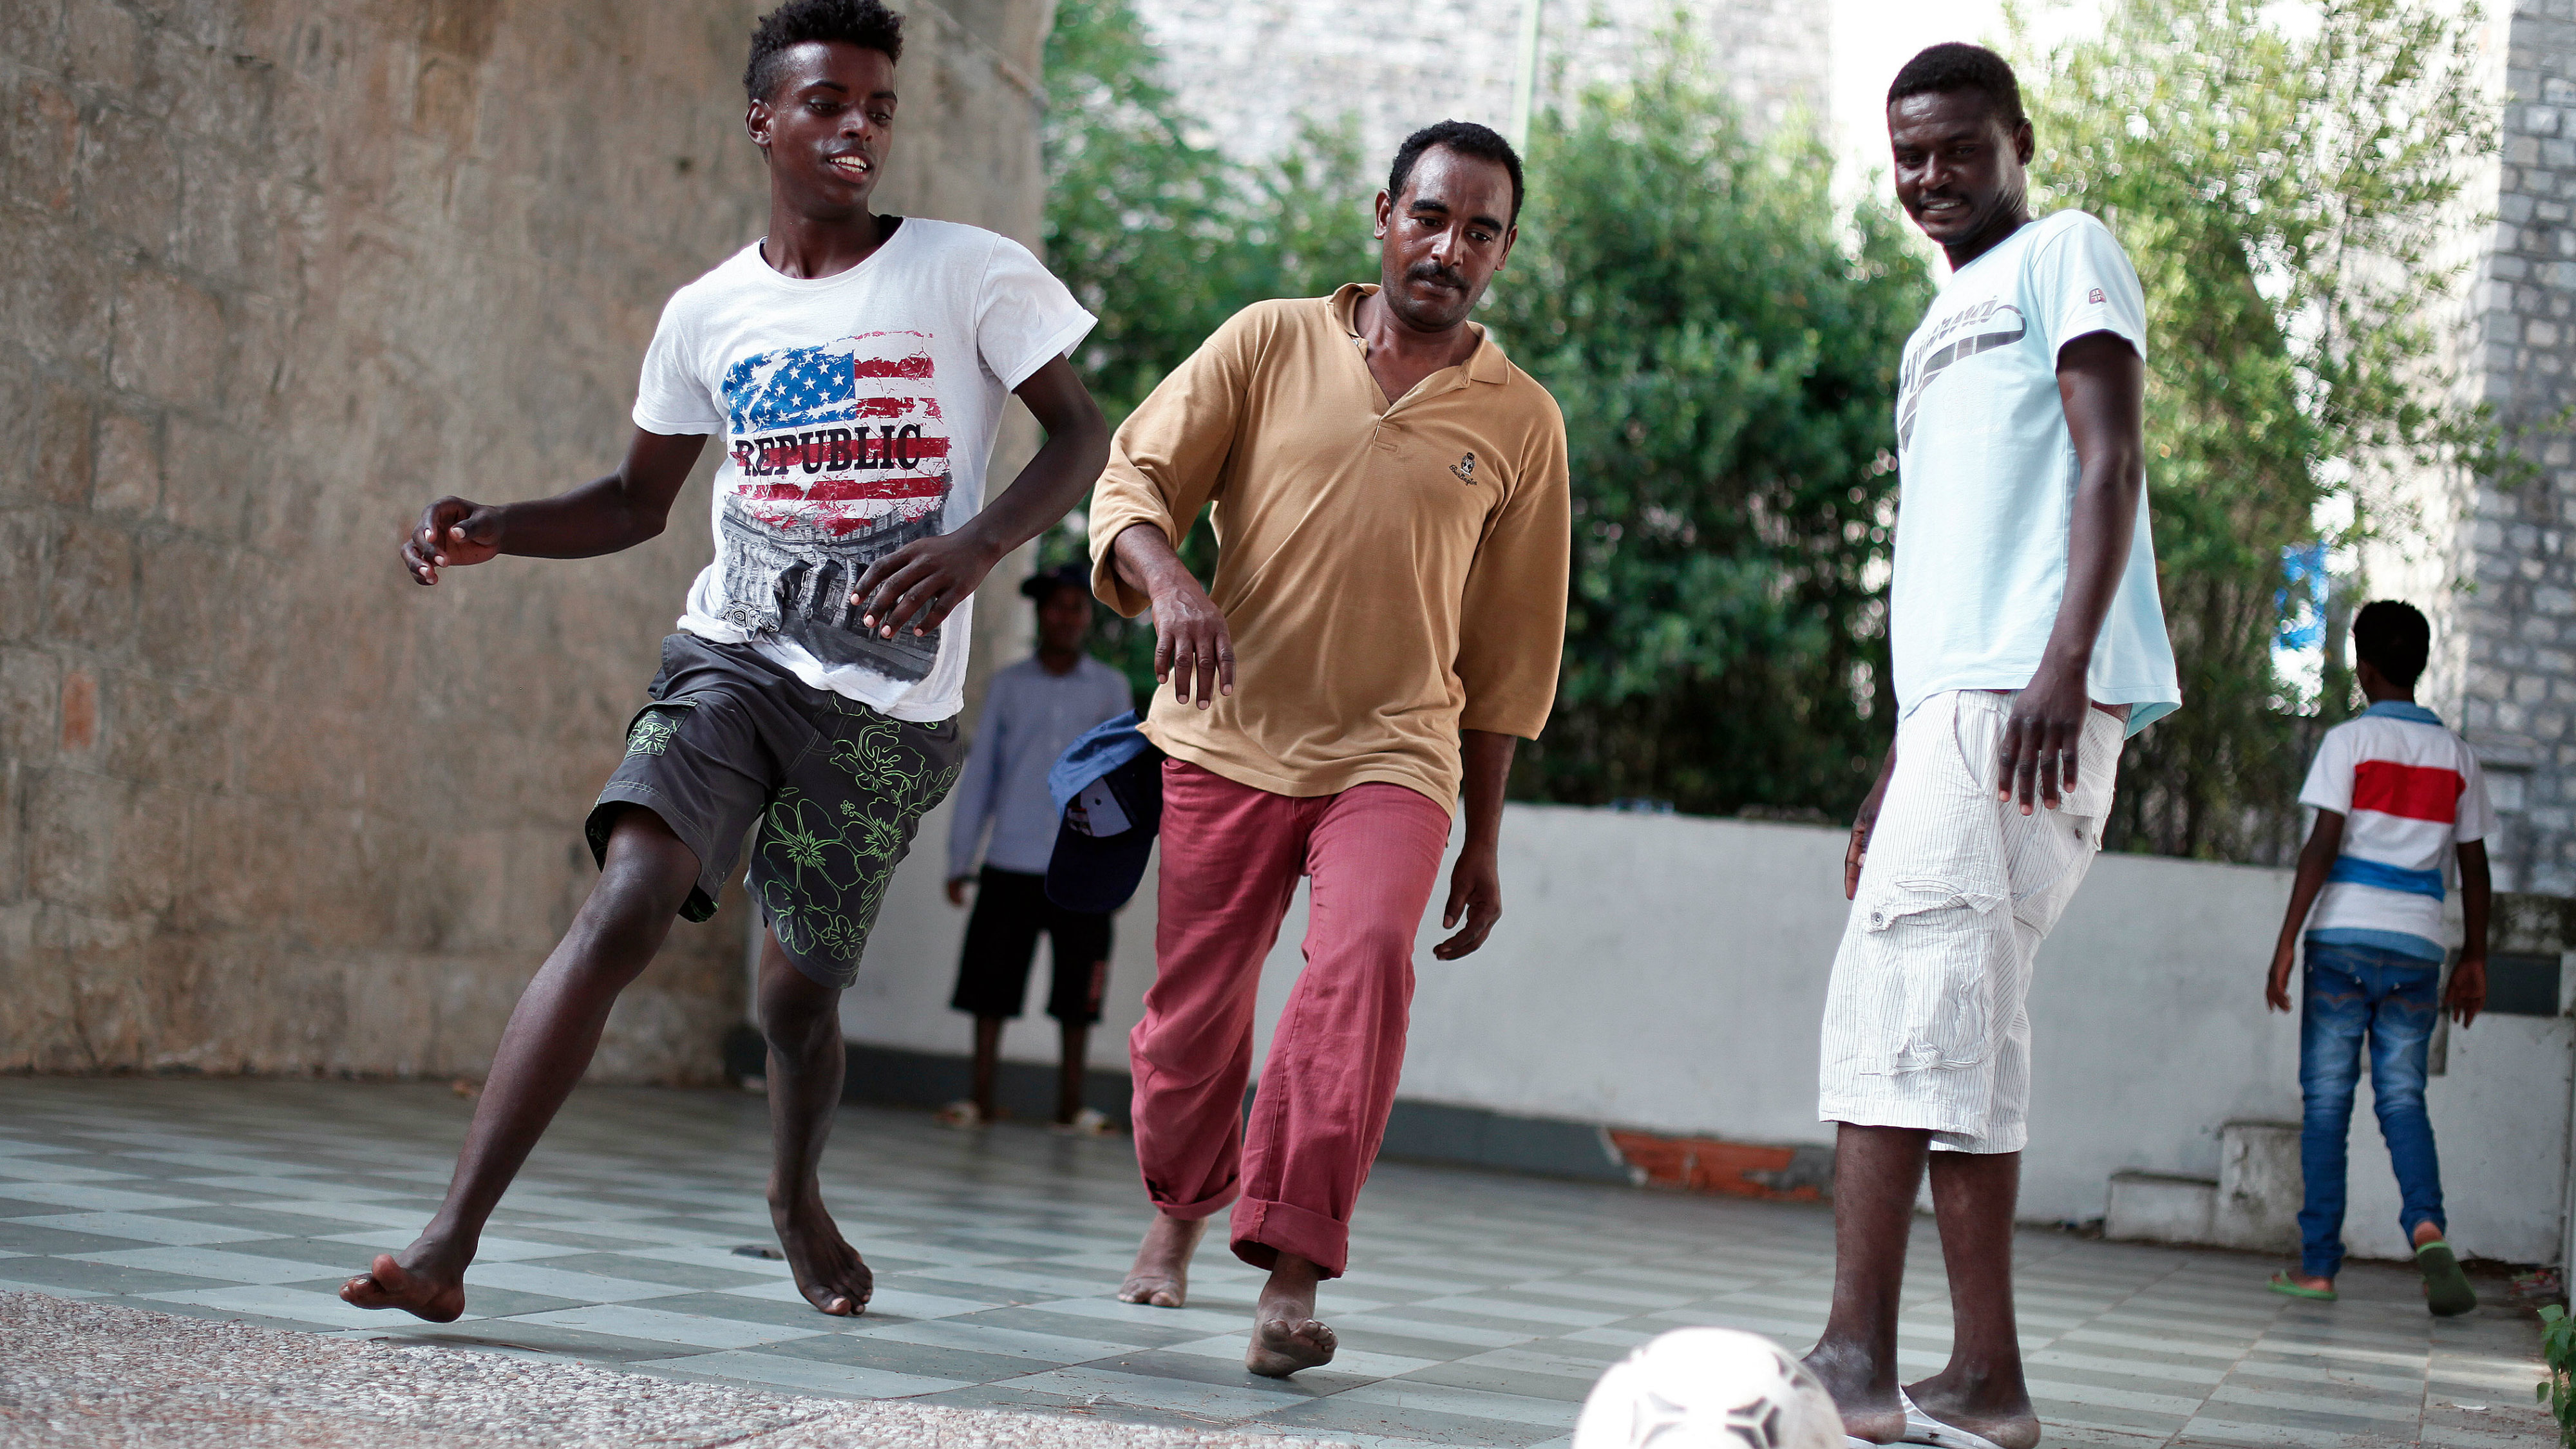 Hassen Hamza, 32, from Sudan, center, and Abraham Hilan 17, from Eritrea, left, play soccer at the Franco-Italian border in Ventimiglia, Italy, Sunday, June 21, 2015. European Union nations failed to bridge differences Tuesday, June 16 over an emergency plan to share the burden of the thousands of refugees crossing the Mediterranean Sea, while on the French-Italian border, police in riot gear forcibly removed dozens of migrants. (AP Photo/Thibault Camus)